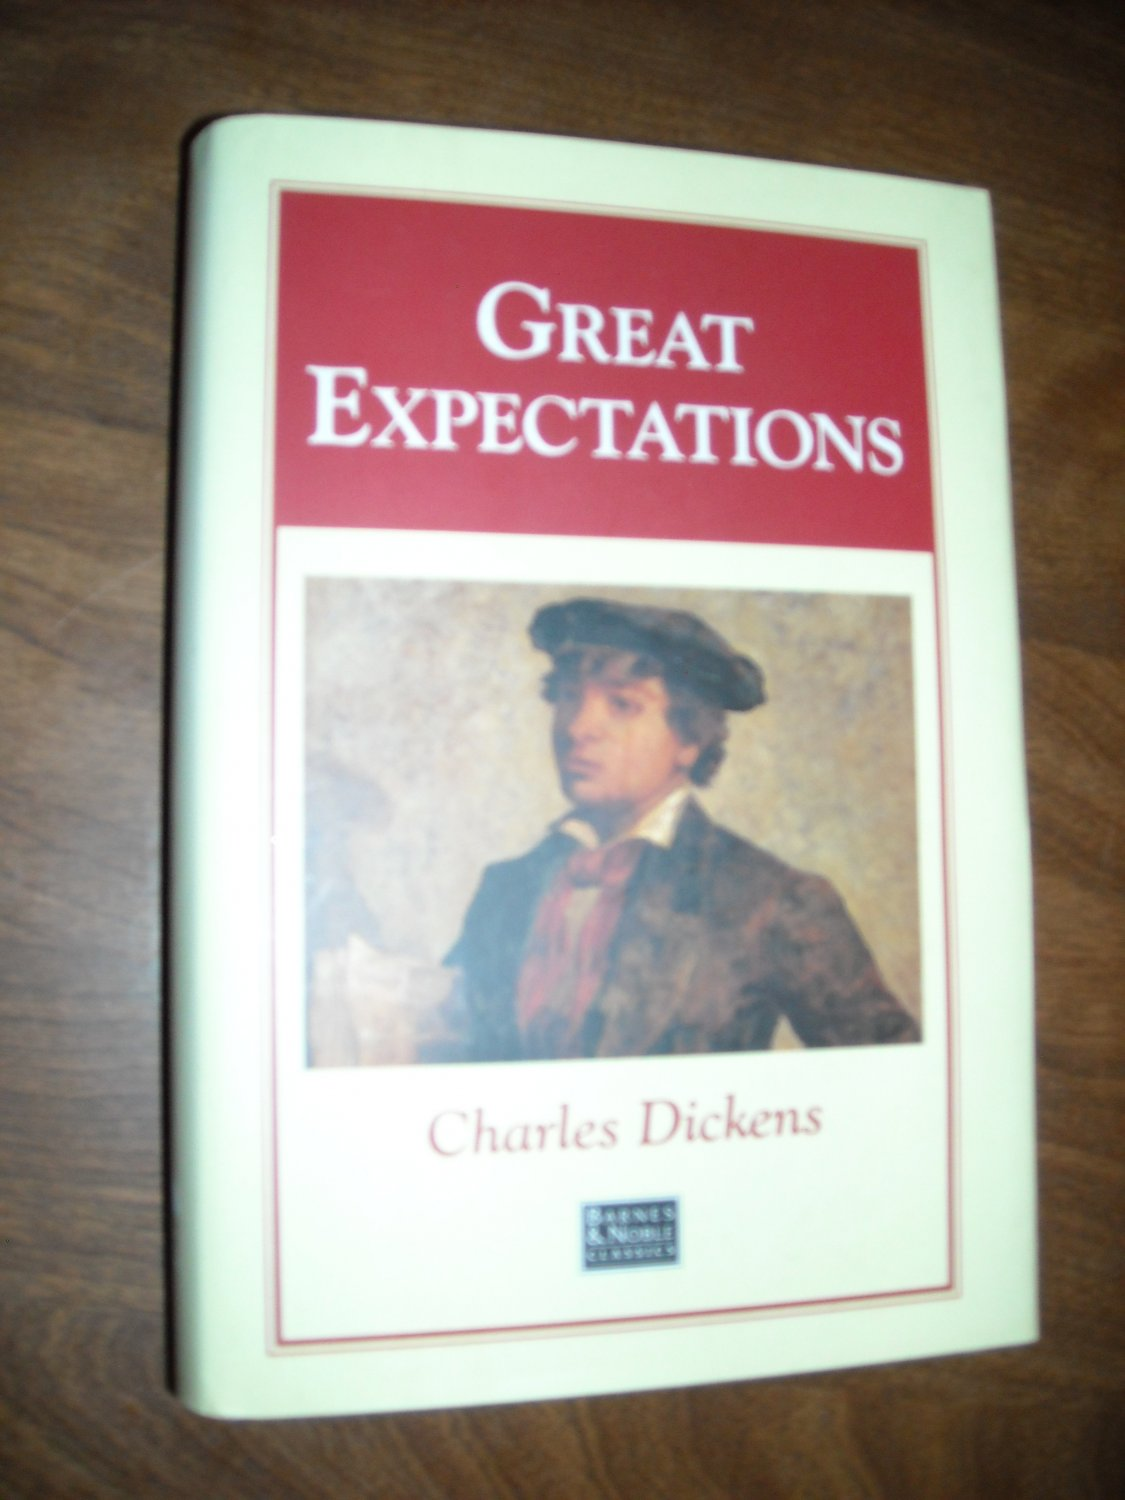 illusion versus truth in charles dickens great expectations Familiar cliches about illusion versus truth in charles dickens' novel, great expectations in the novel great expectation, pip is a character who as a child become a wealthy person from a poor background family.